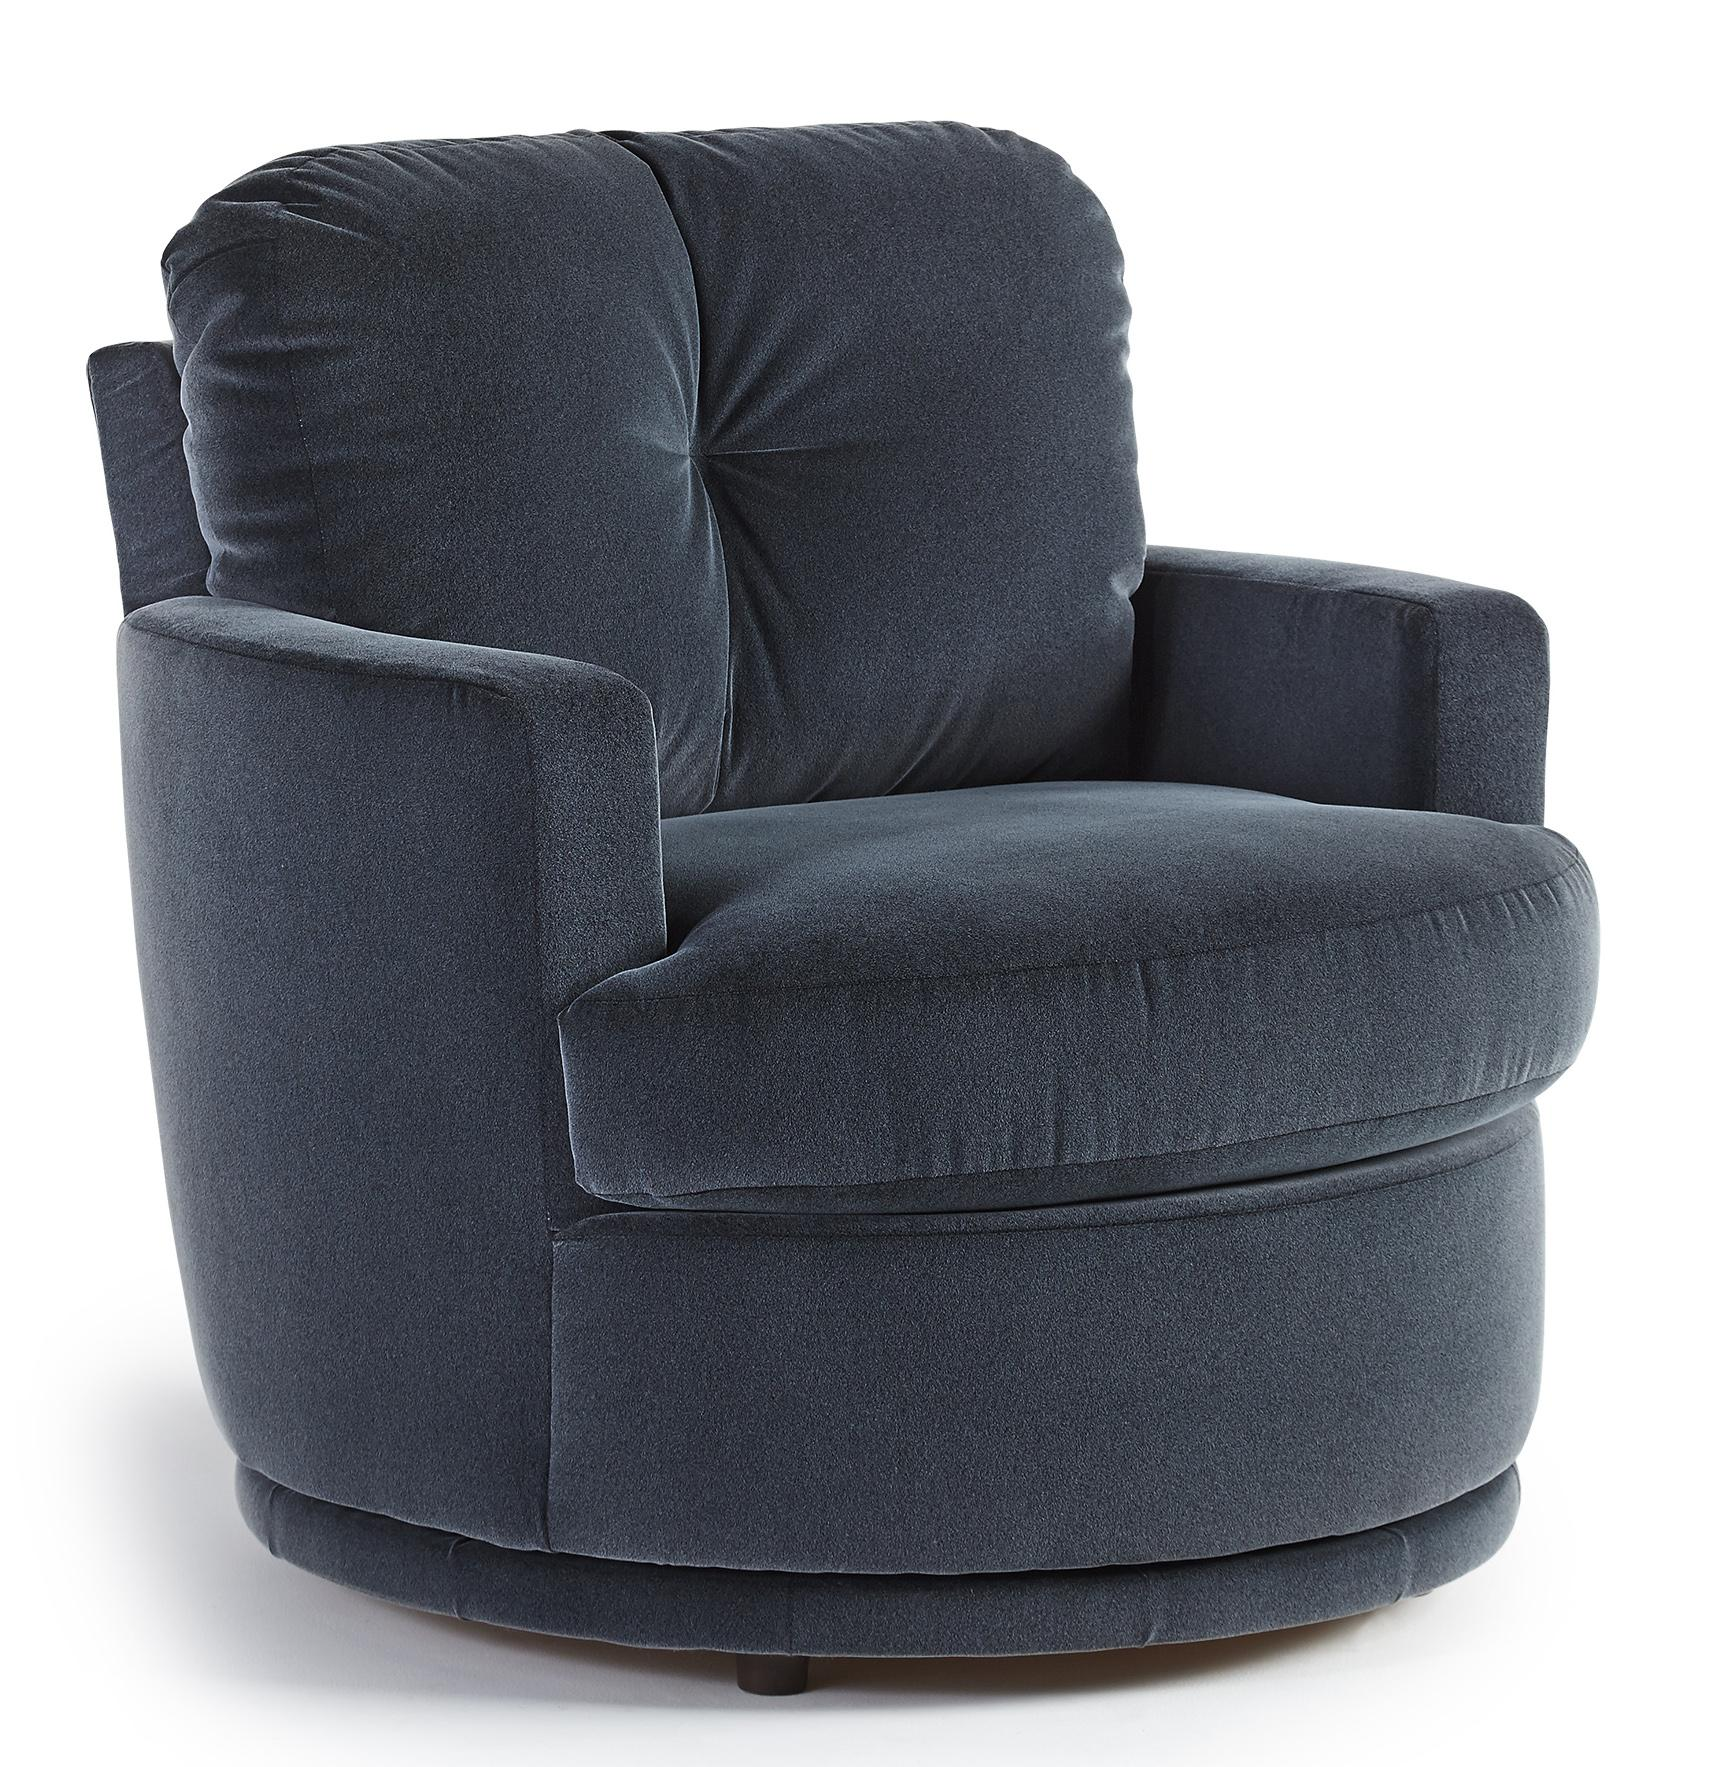 Plush Chairs Chairs Swivel Barrel Skipper Swivel Chair With Plush Tufted Back By Best Home Furnishings At Darvin Furniture